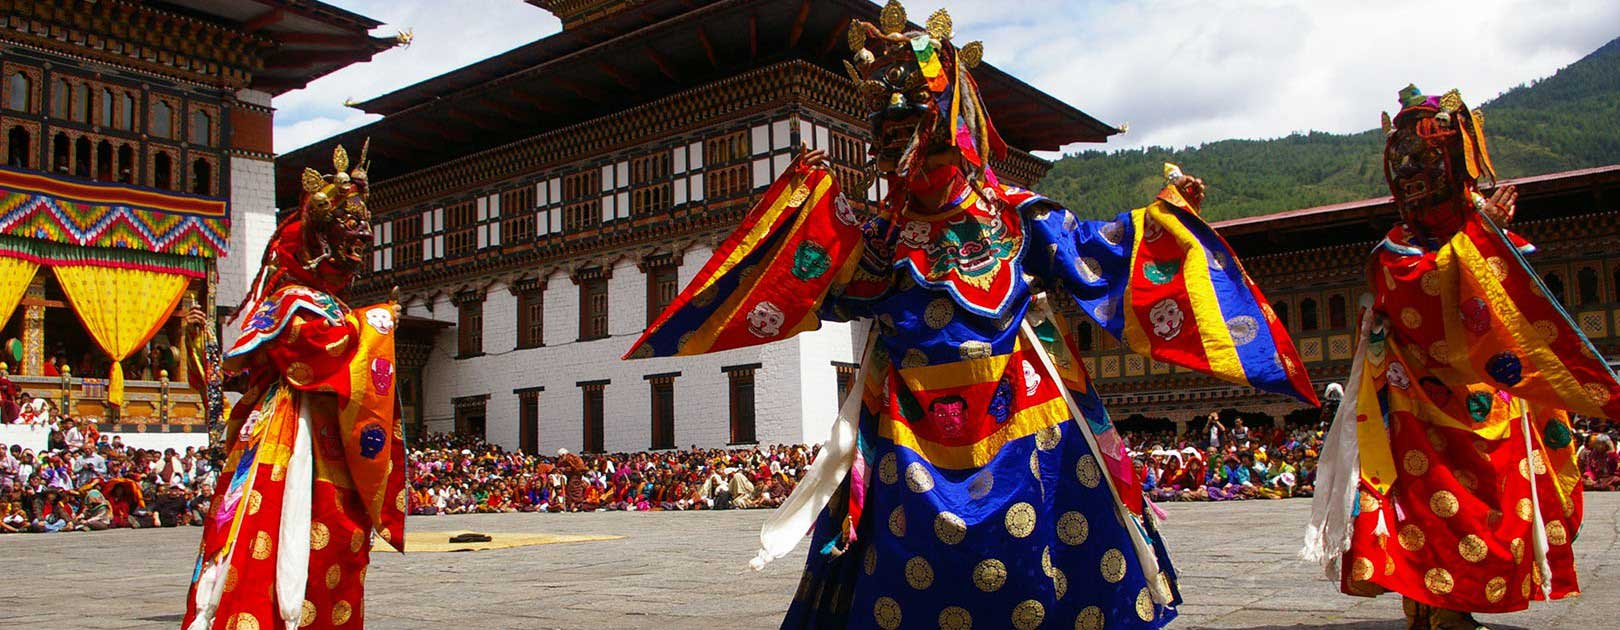 Bhutan Dragon Journey Tour